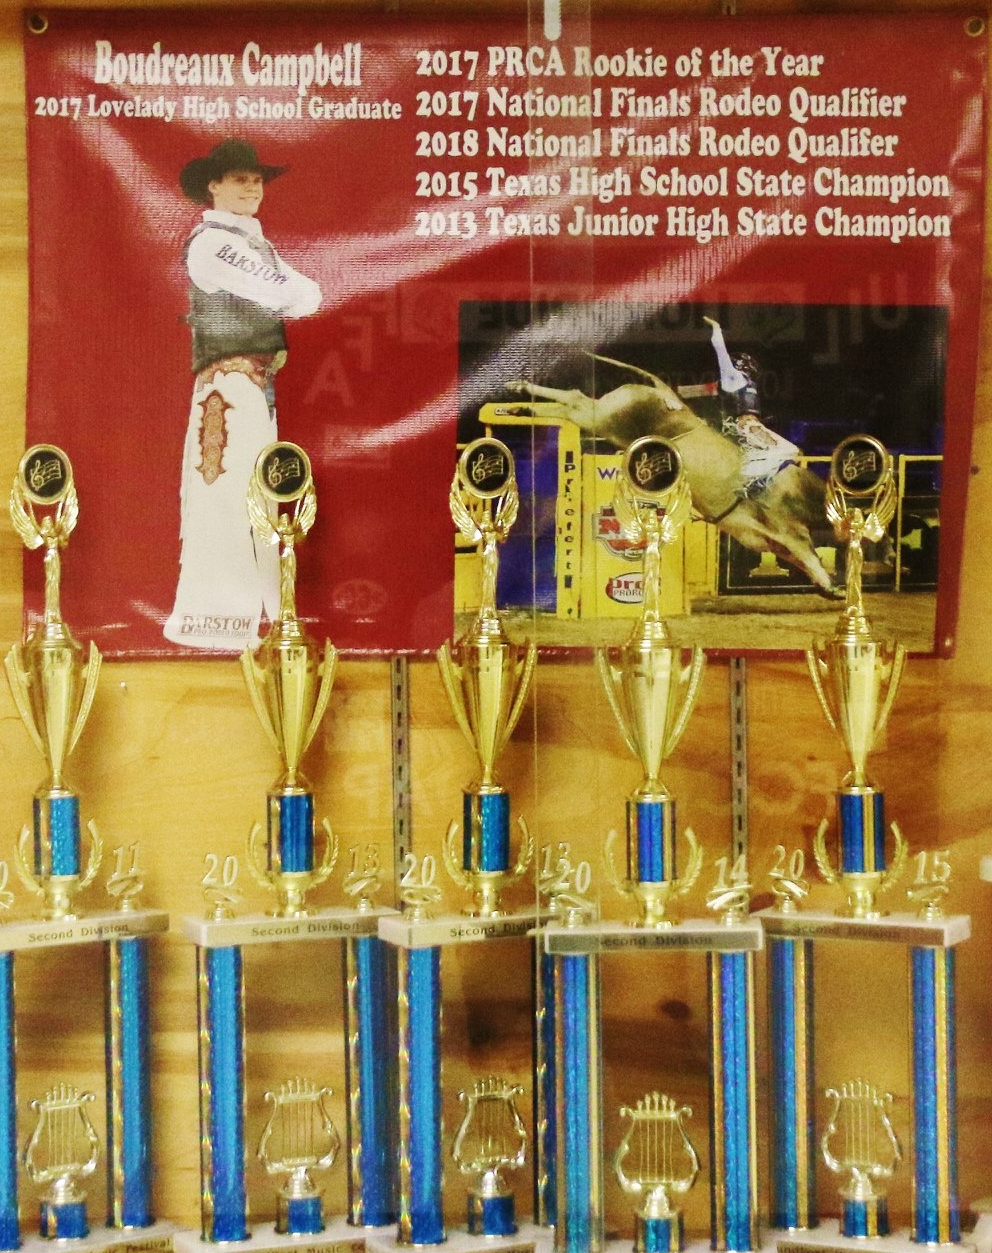 Campbell was recently honored at his alma mater, Lovelady High School